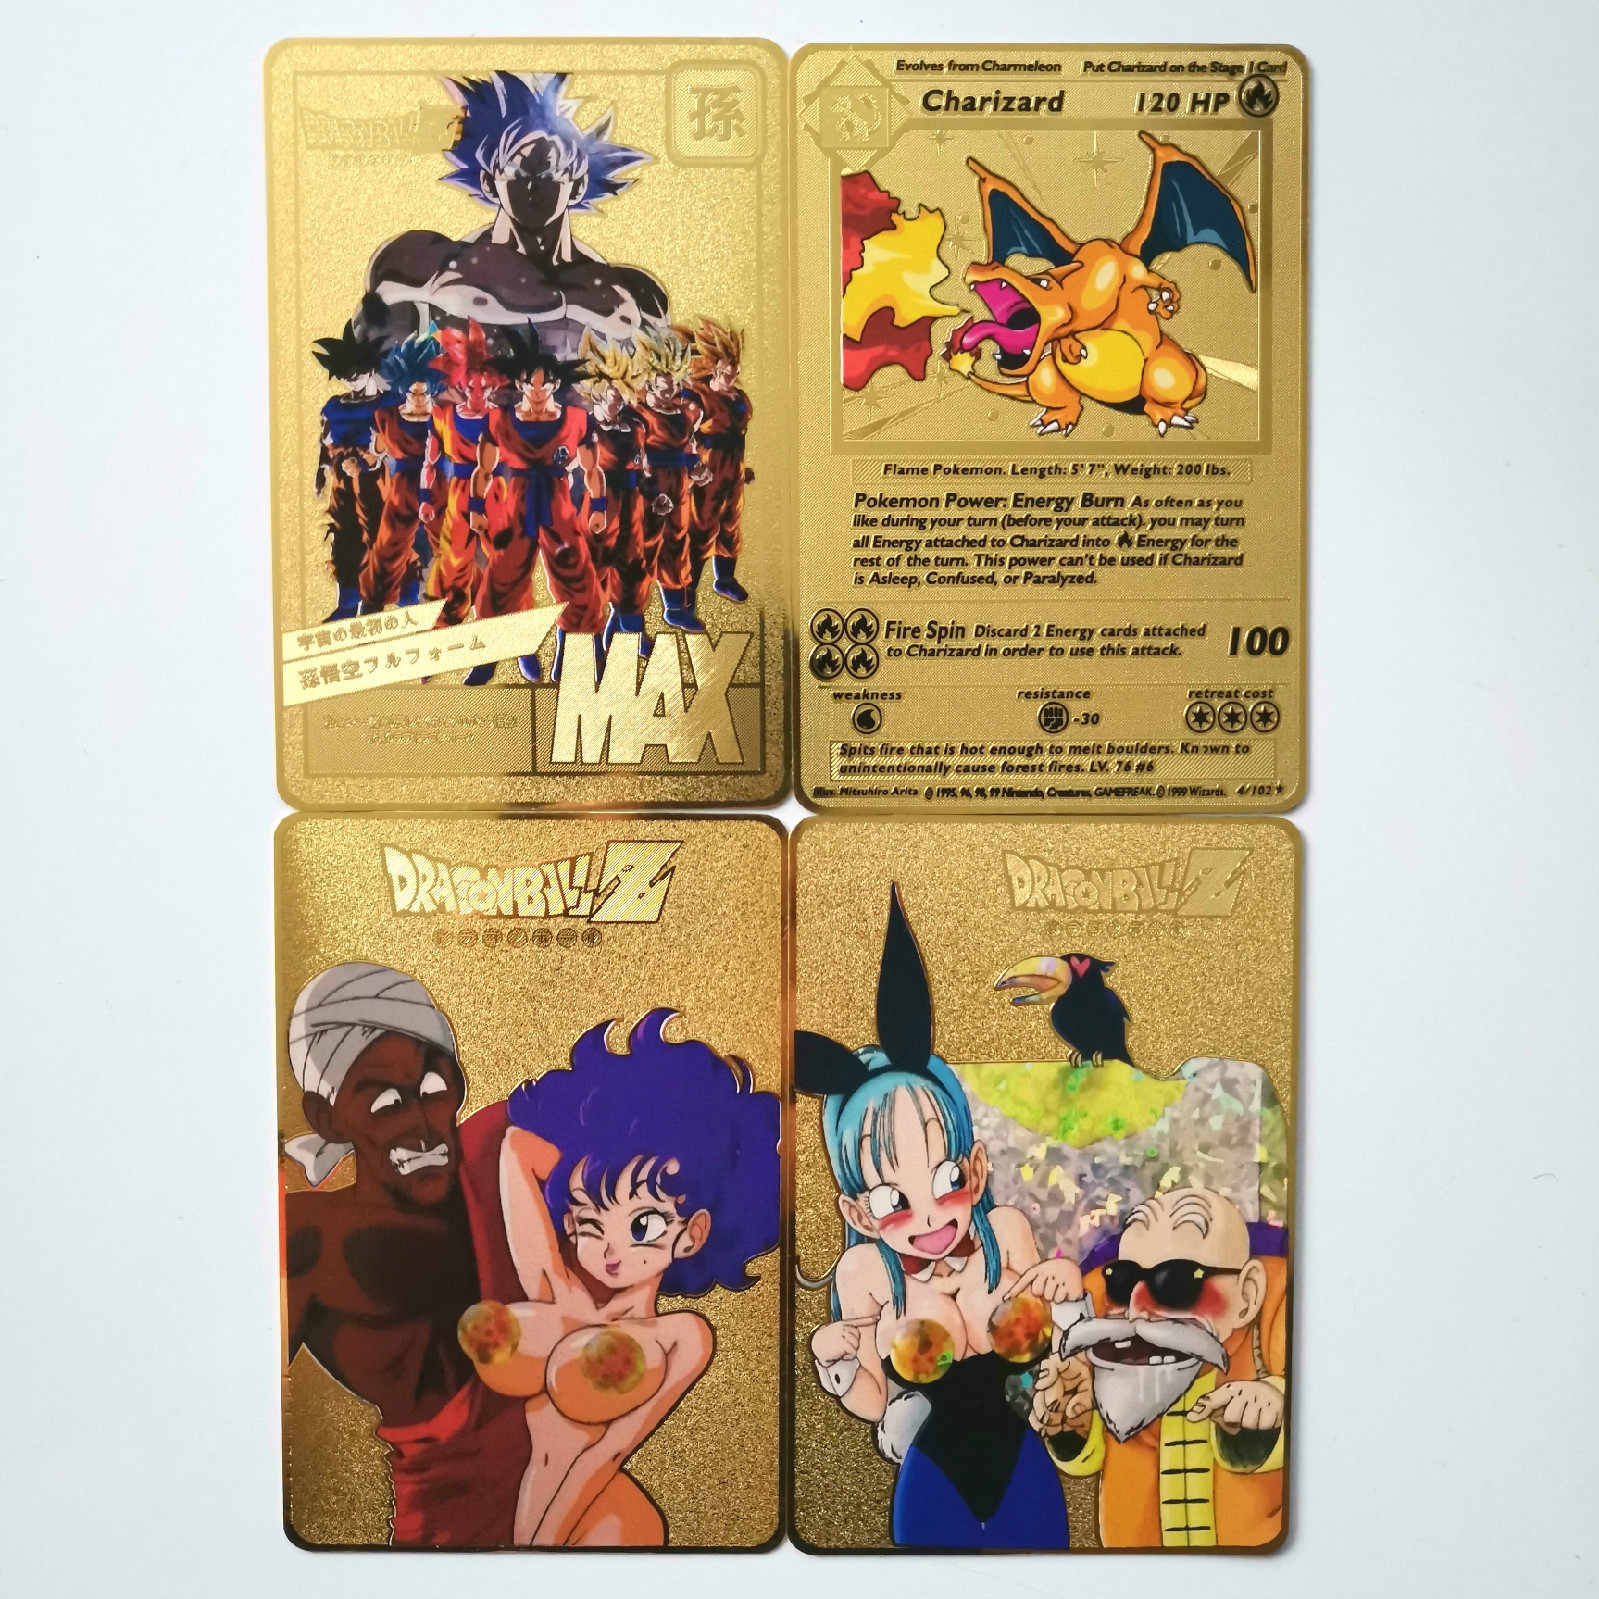 21 styles Gold Metal Card Super Dragon Ball Z Single Heroes Battle Ultra Instinct Goku Game Collection Anime Cards